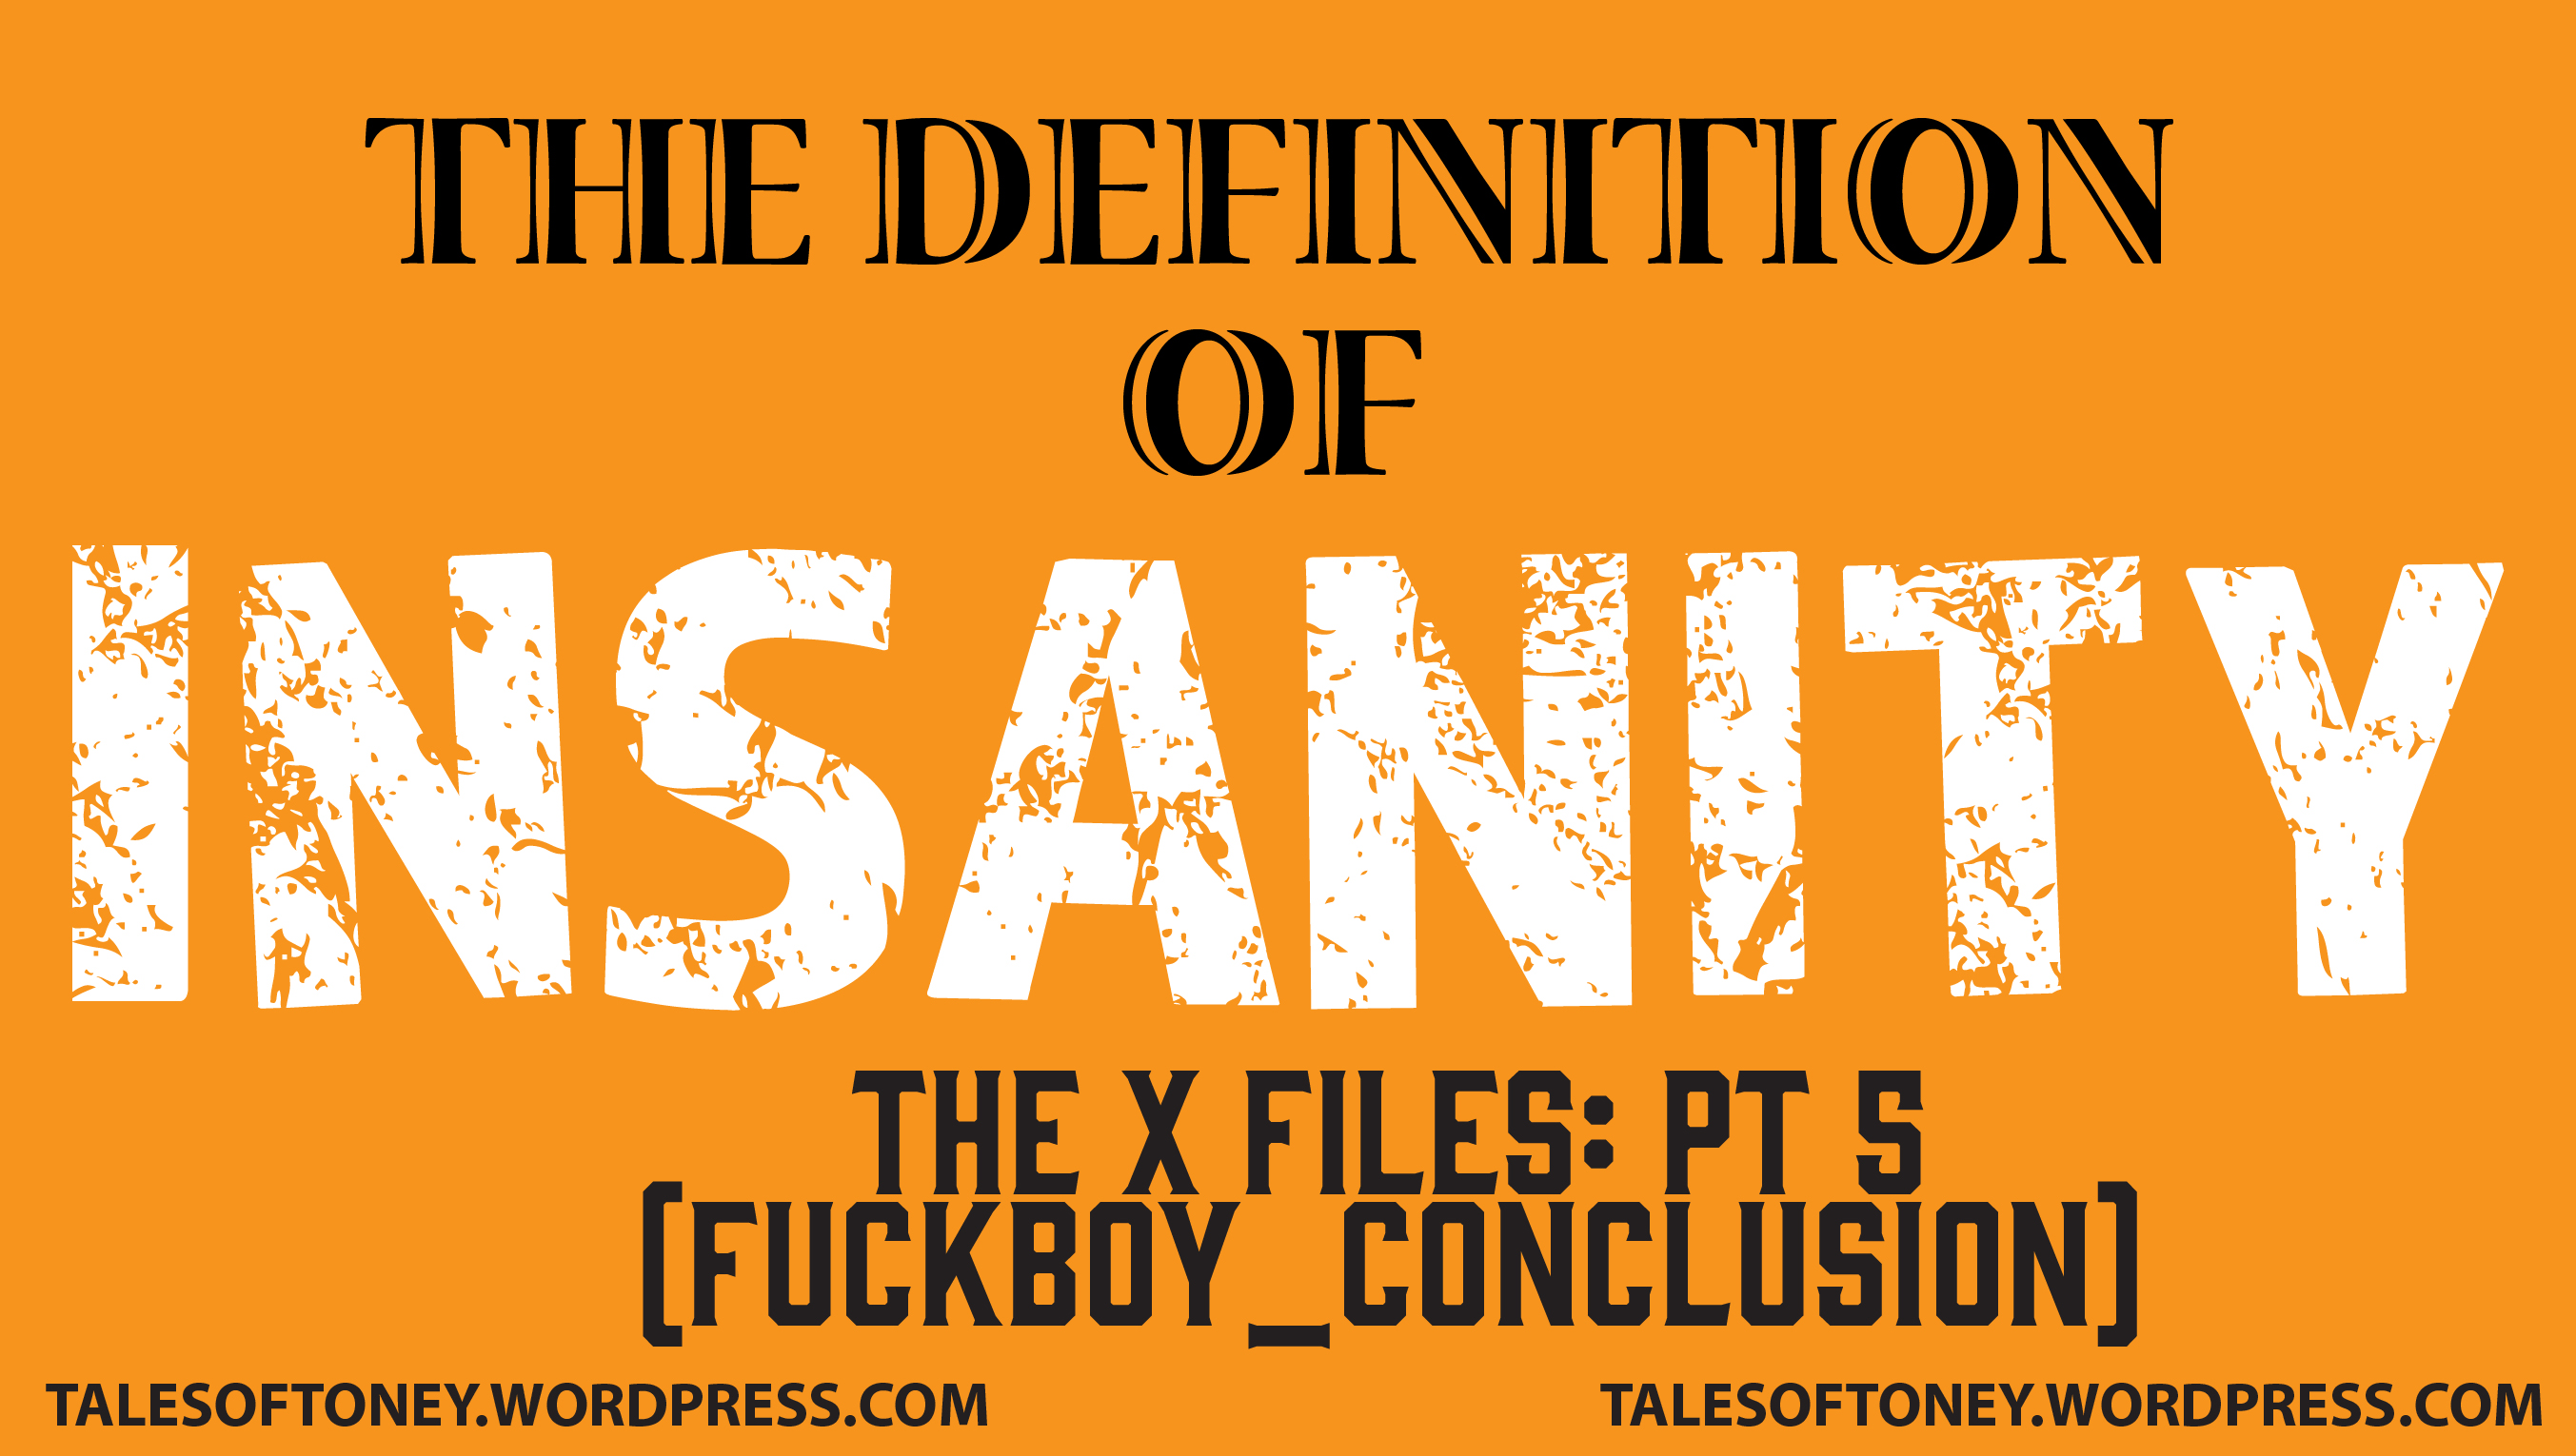 X-FILES_INSANITY HEADER_PT5-01